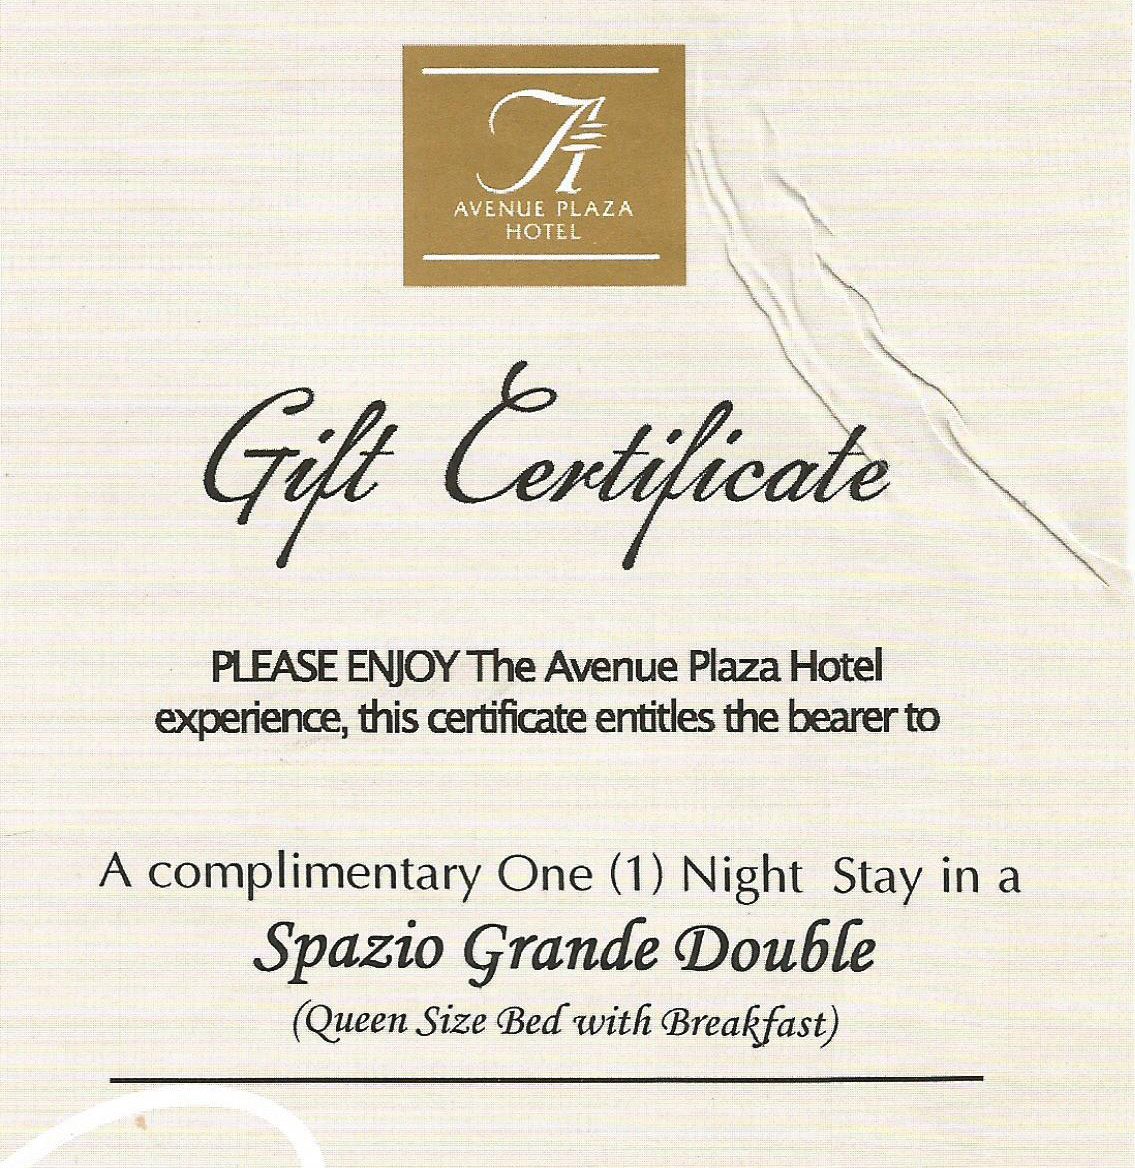 Avenue Plaza Hotel Gc Giveaway Philippine Contests And Promos